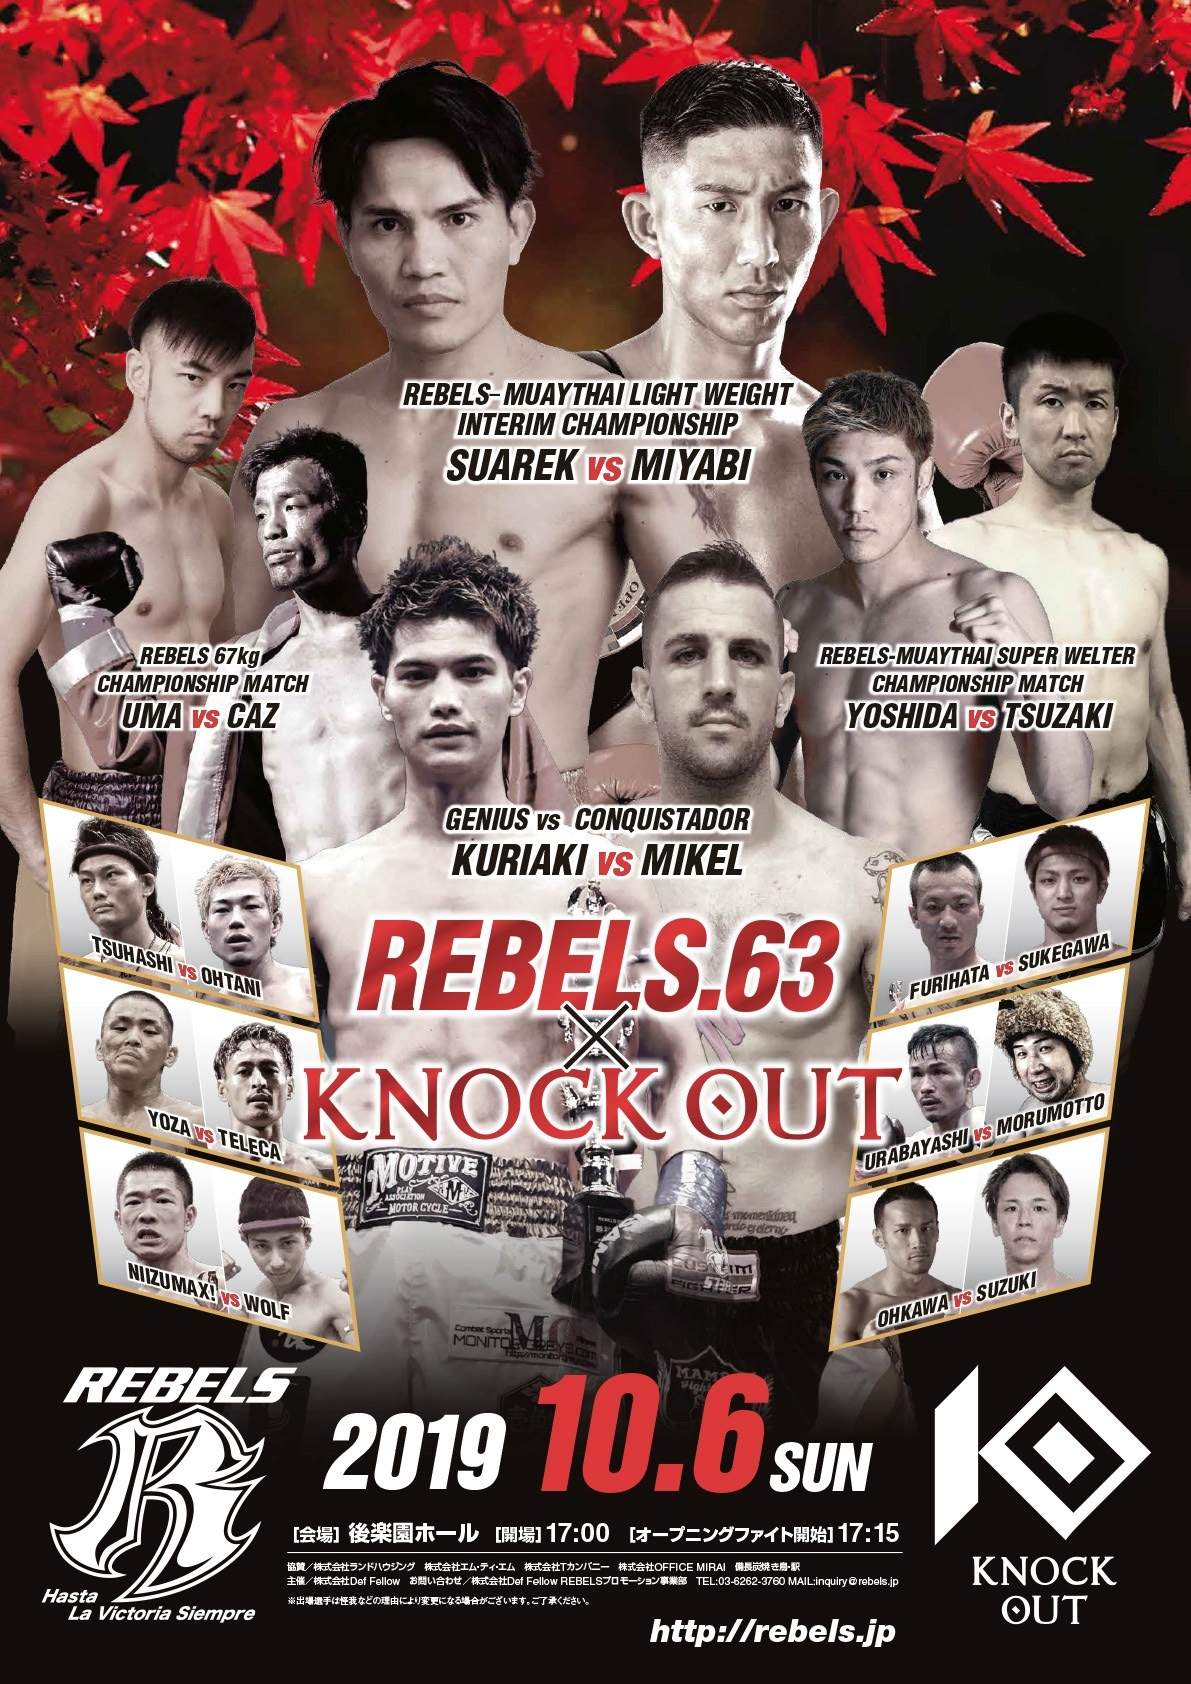 『REBELS.63×KNOCK OUT』は10月6日(日) に開催